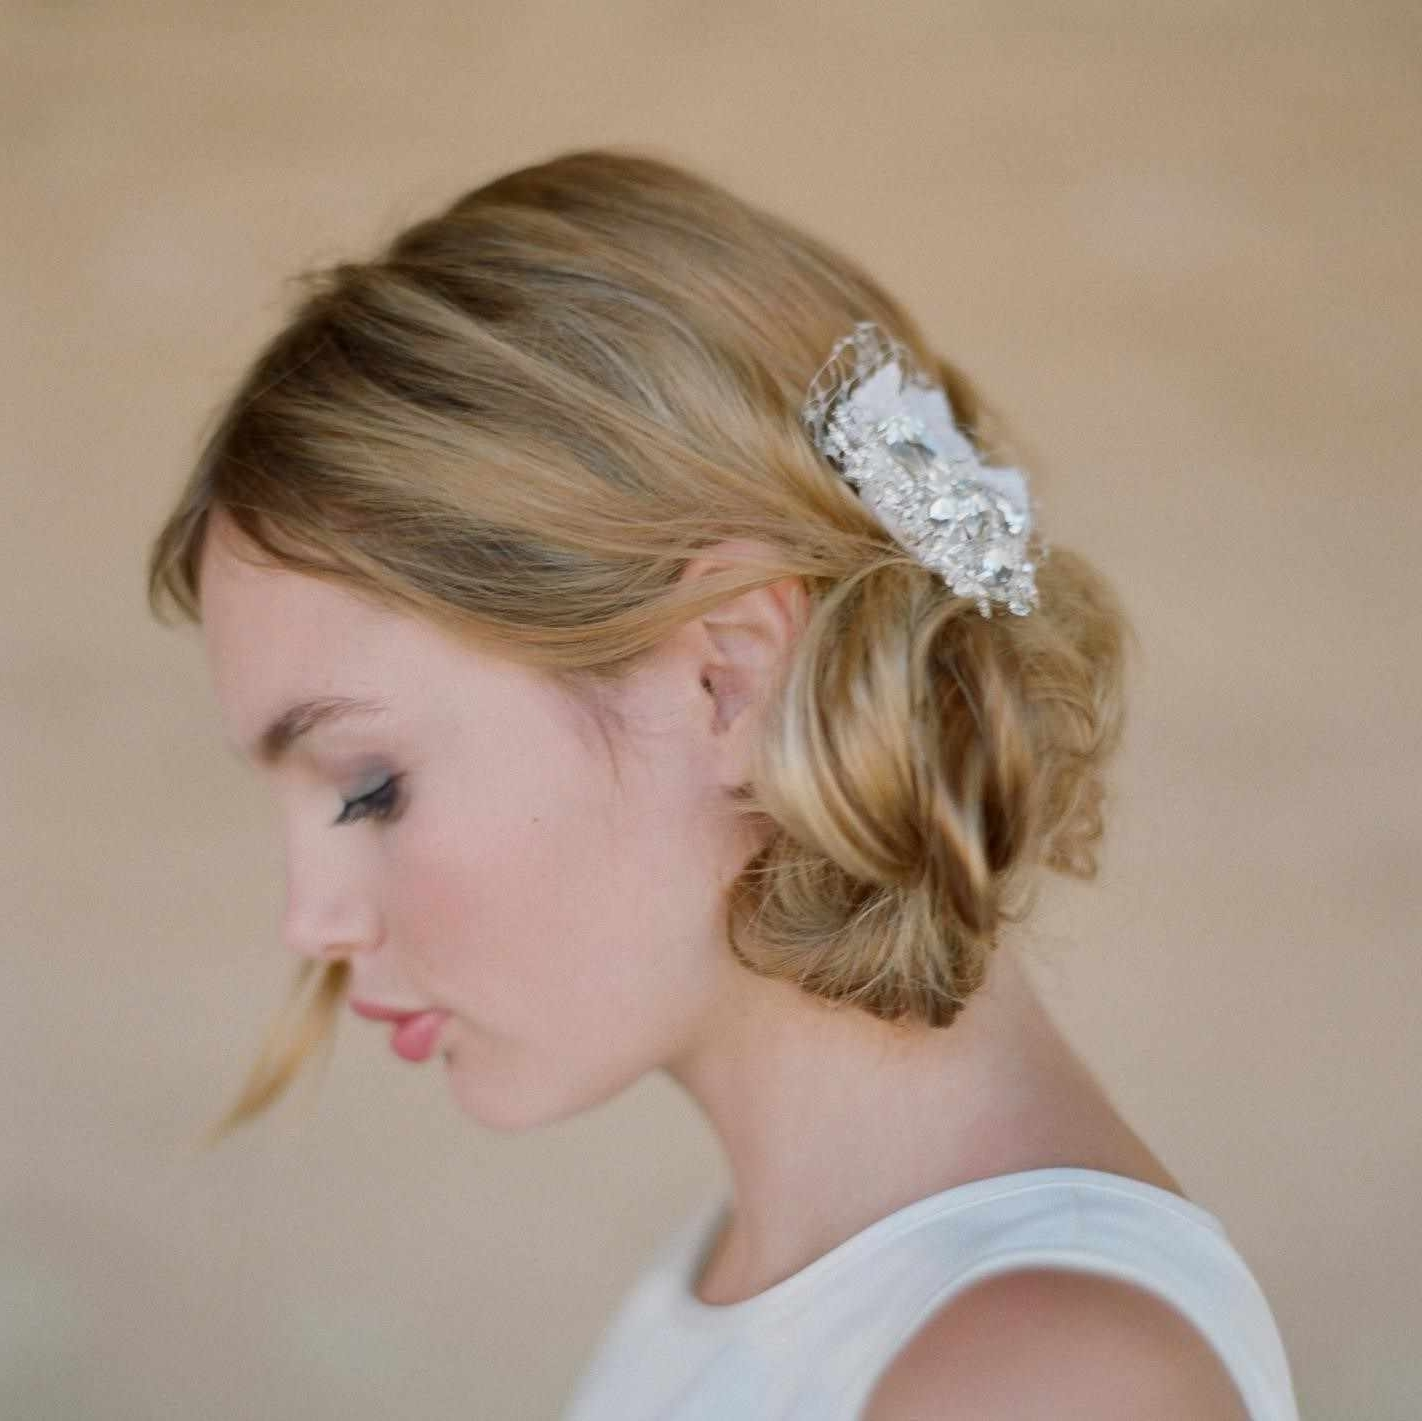 Well Known Wedding Hairstyles For Round Face With Medium Length Hair Inside Incredible Wedding For Bride Best Bridal Round Faces Hairstyle Pic (View 13 of 15)